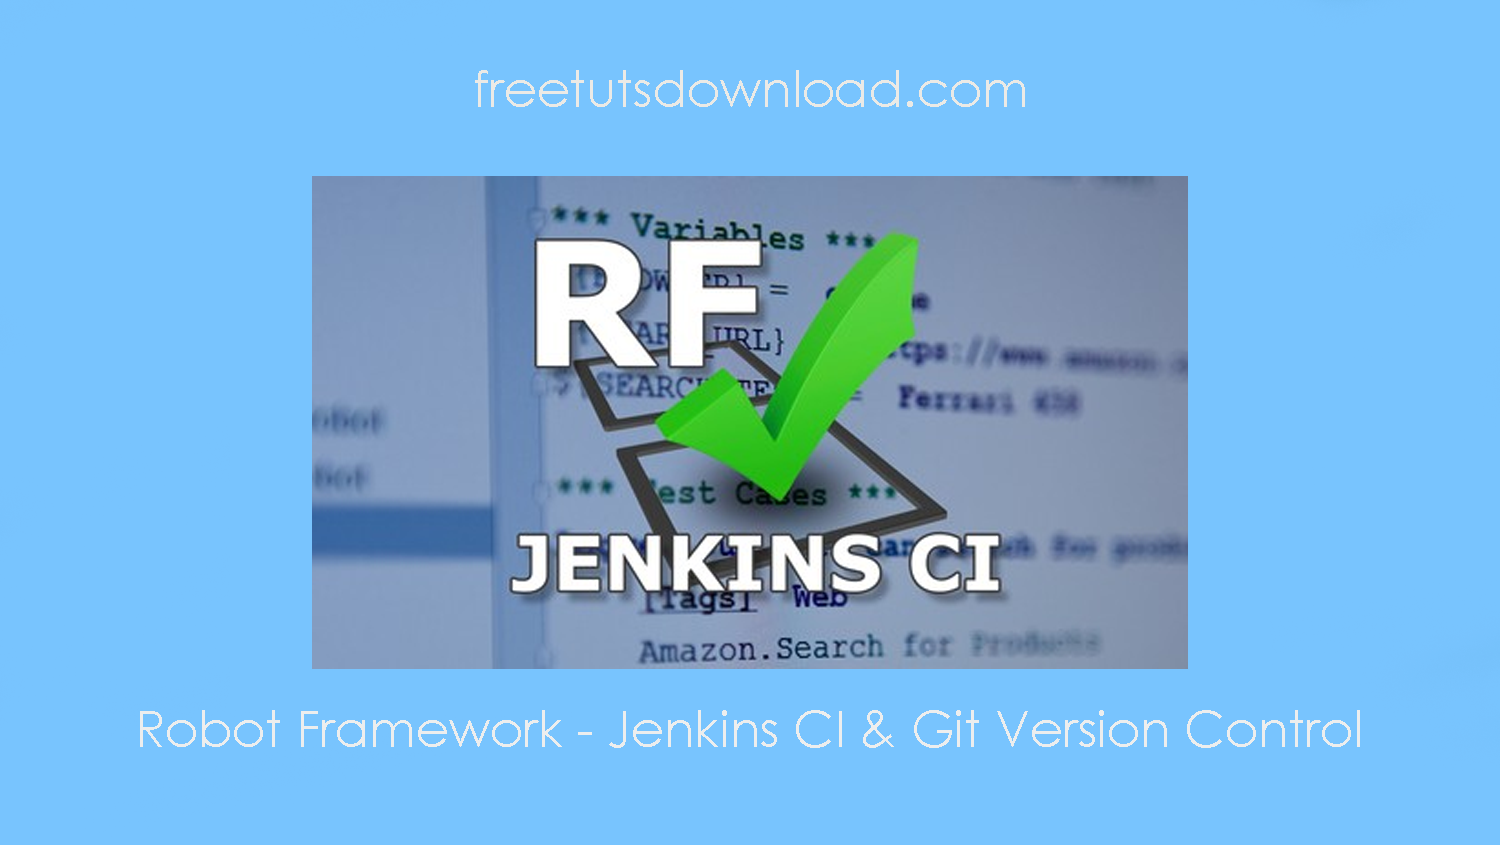 Robot Framework - Jenkins CI & Git Version Control free download